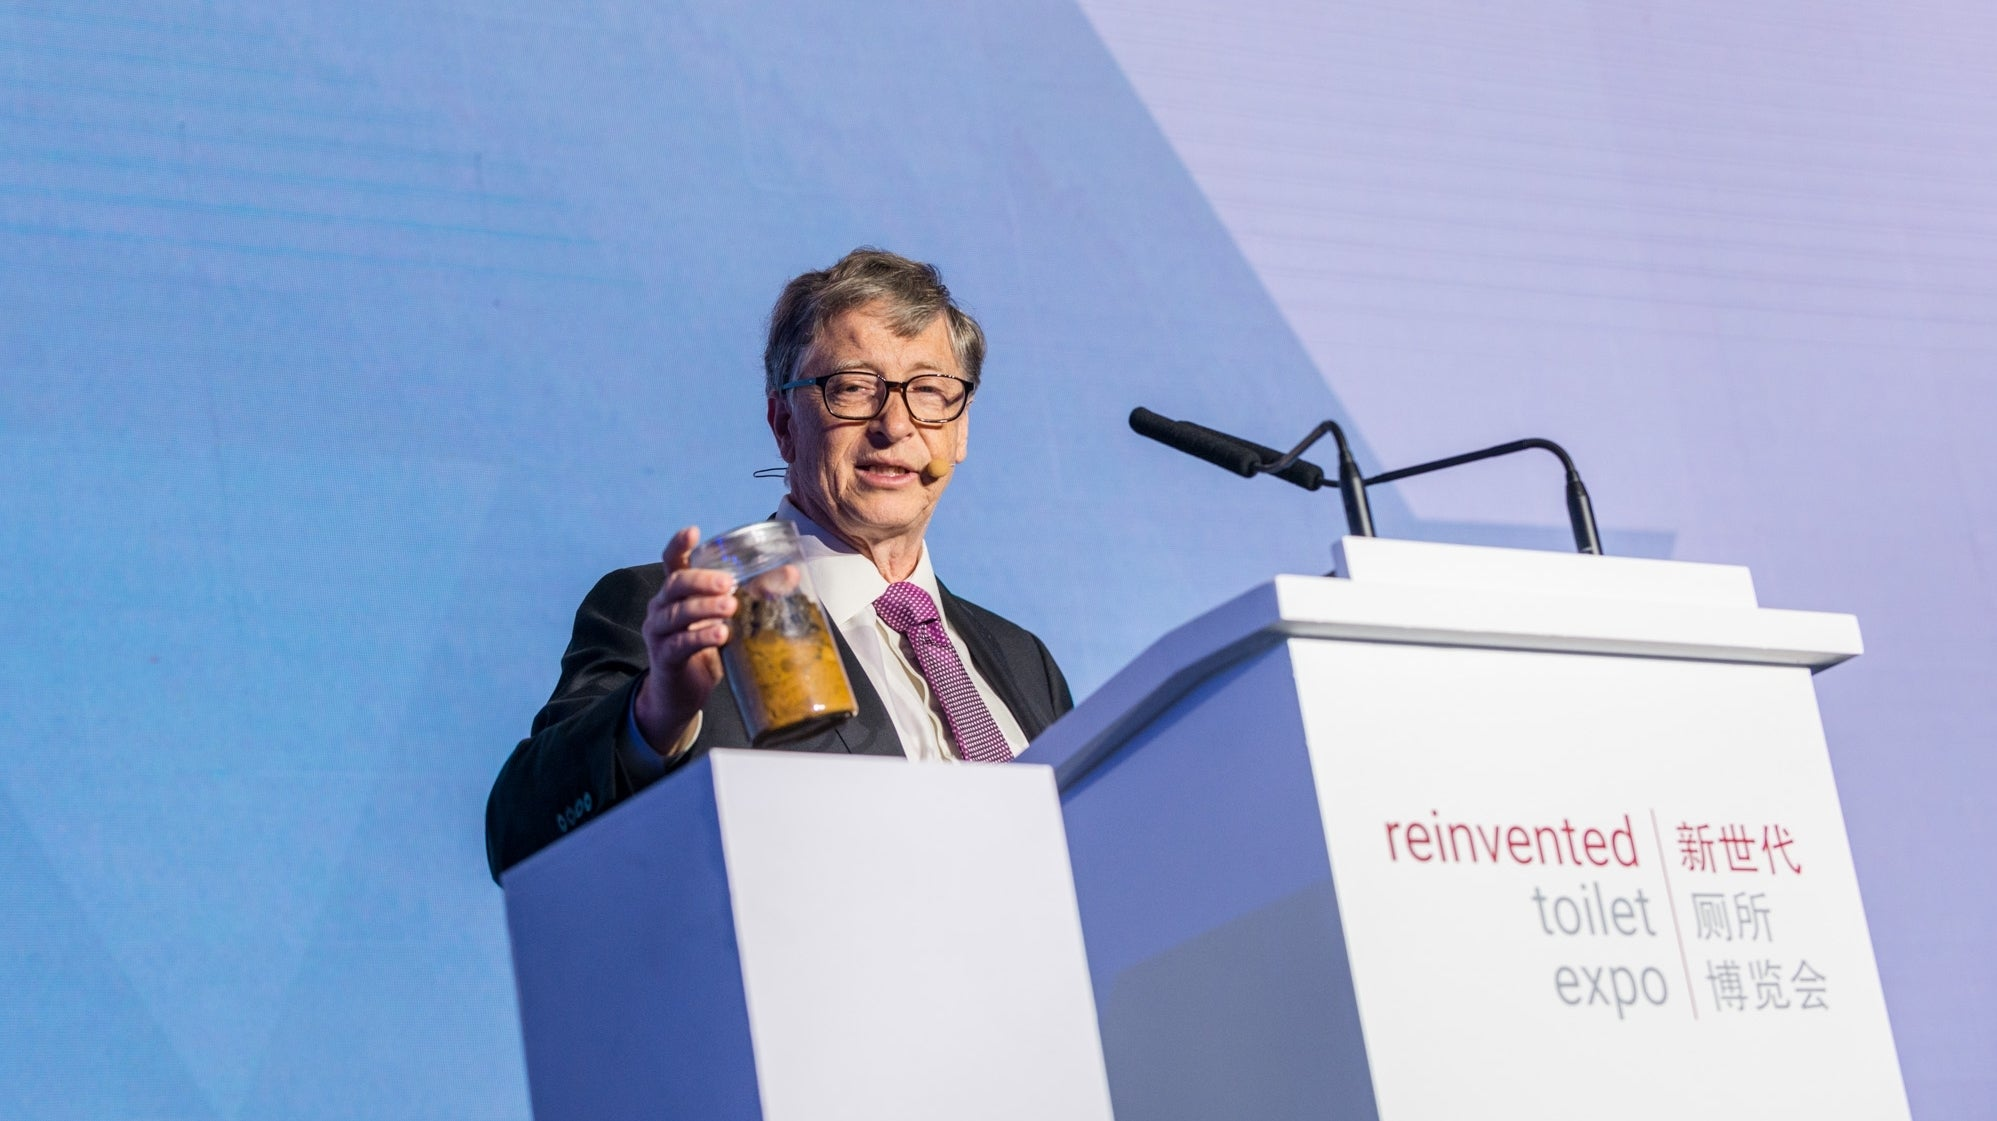 Bill Gates Showed Off A Jar Of Poop To Get Us Jazzed About Toilets Of The Future